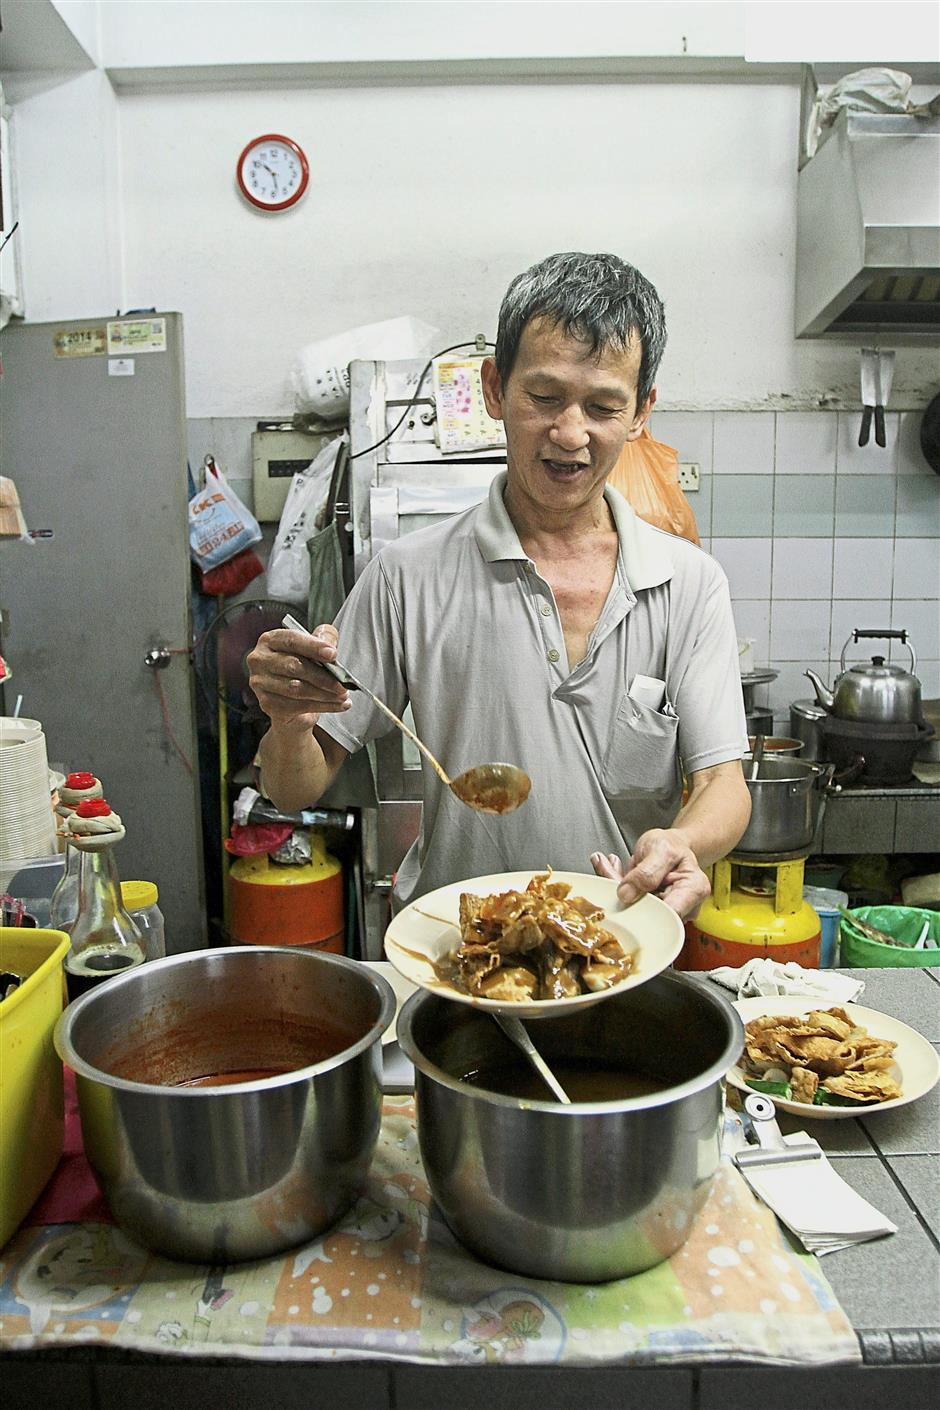 Phang has been operating the stall from around 20 years.